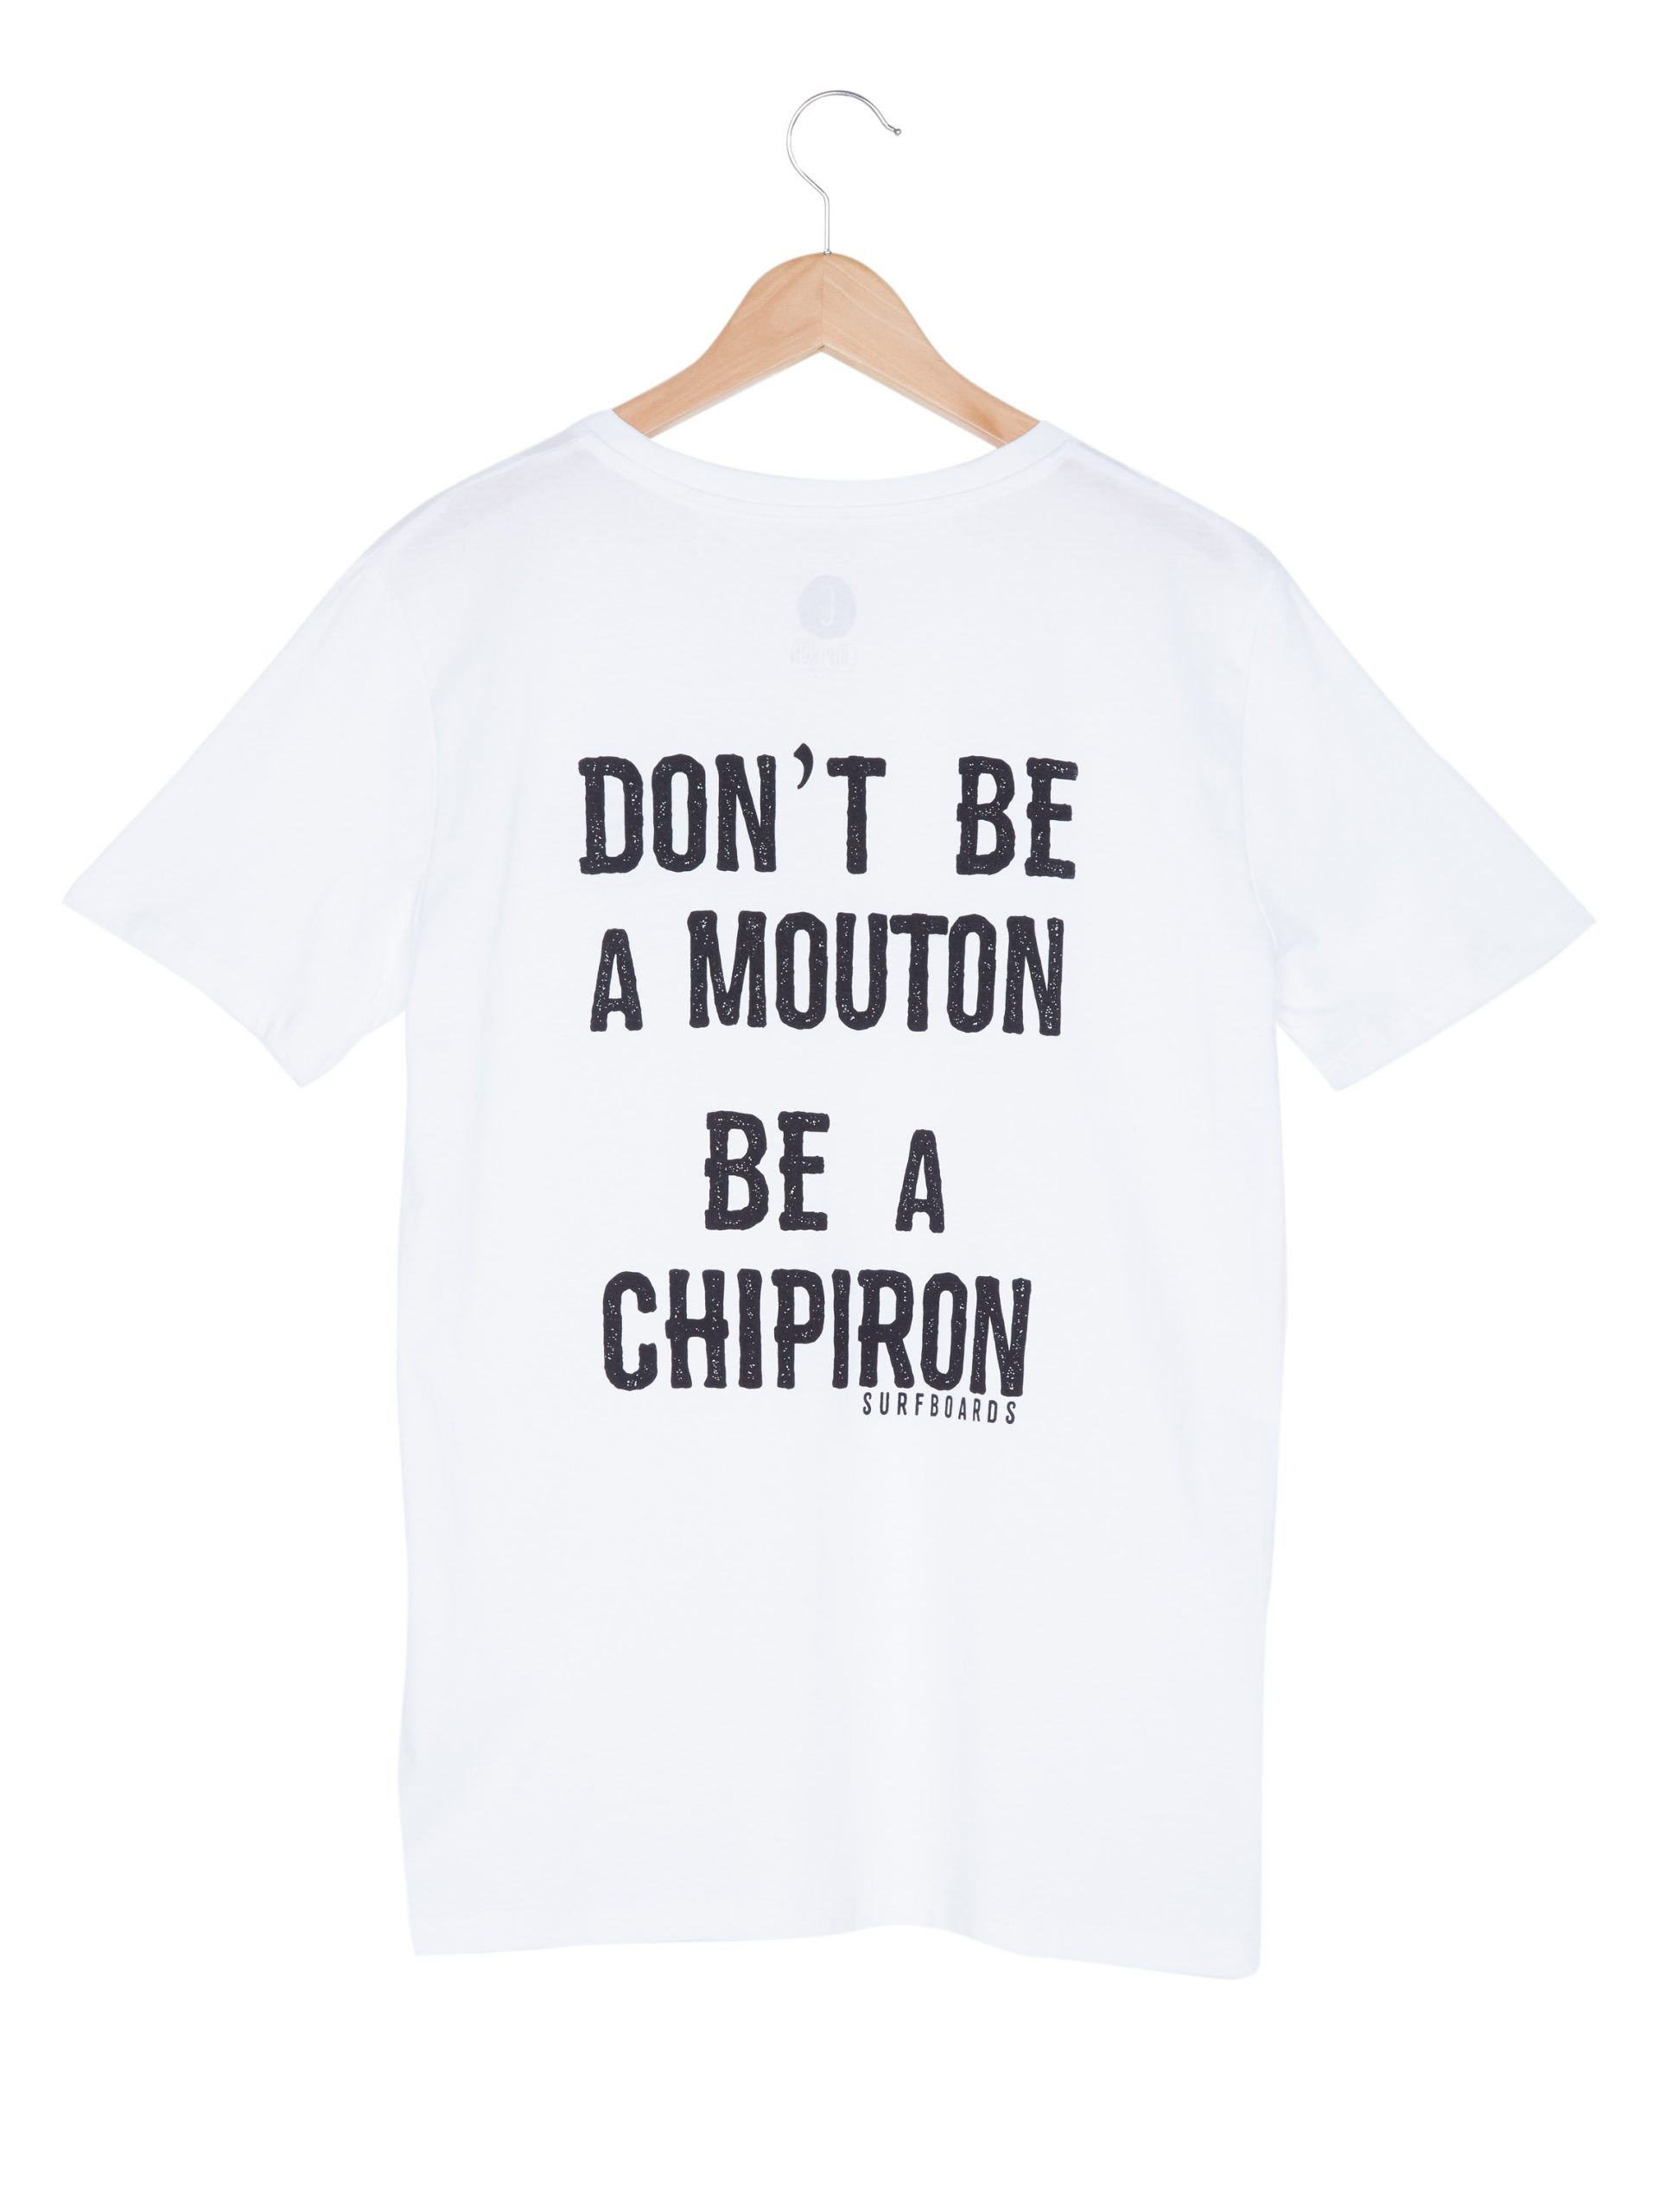 Tshirt Don't be a mouton white Chipiron